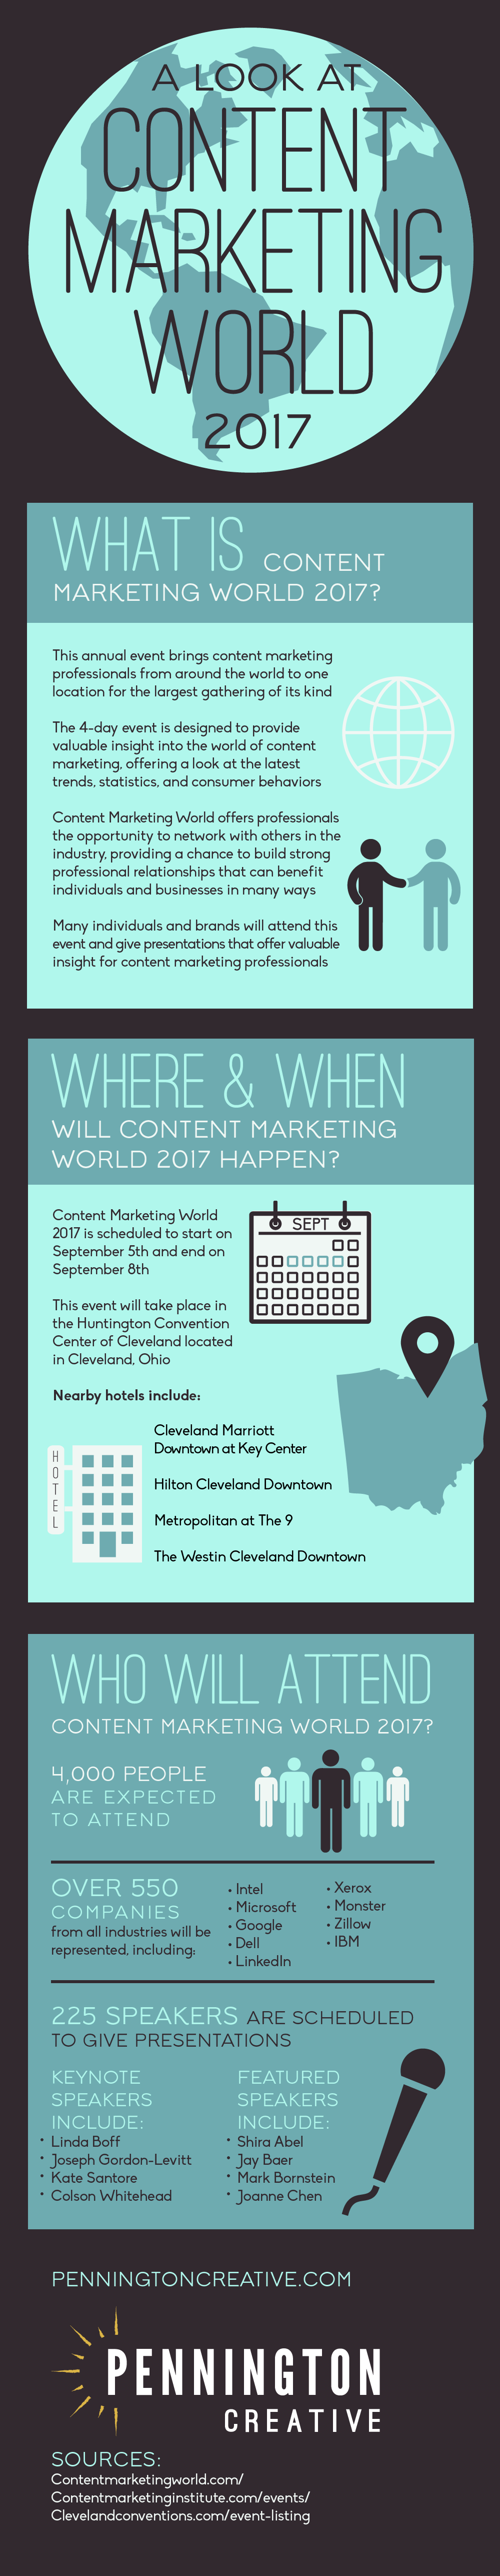 Infographic about the 2017 Content Marketing World convention.